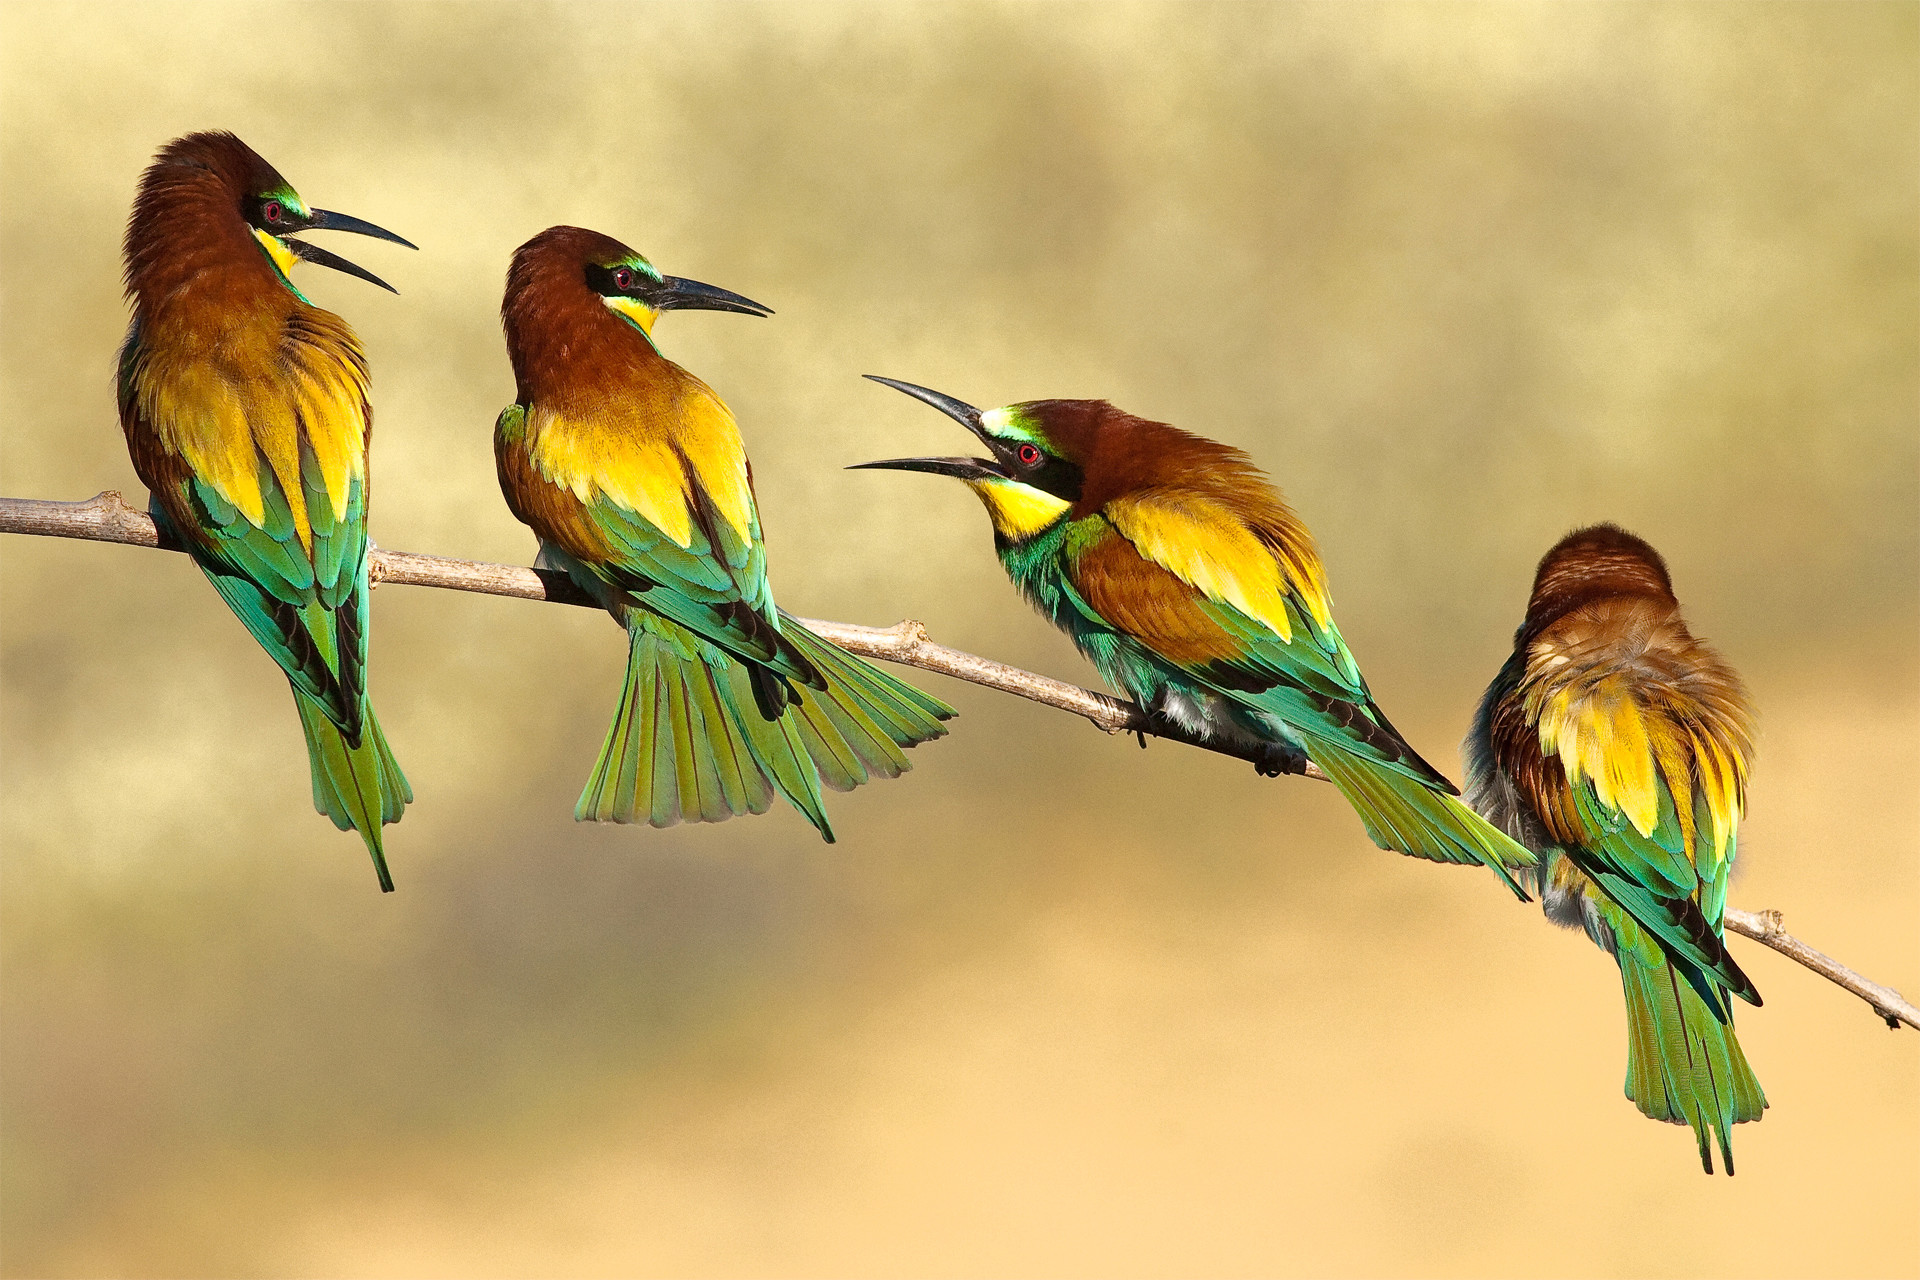 … bee-eaters, birds, branch, animal, photo, beauty nature, picture